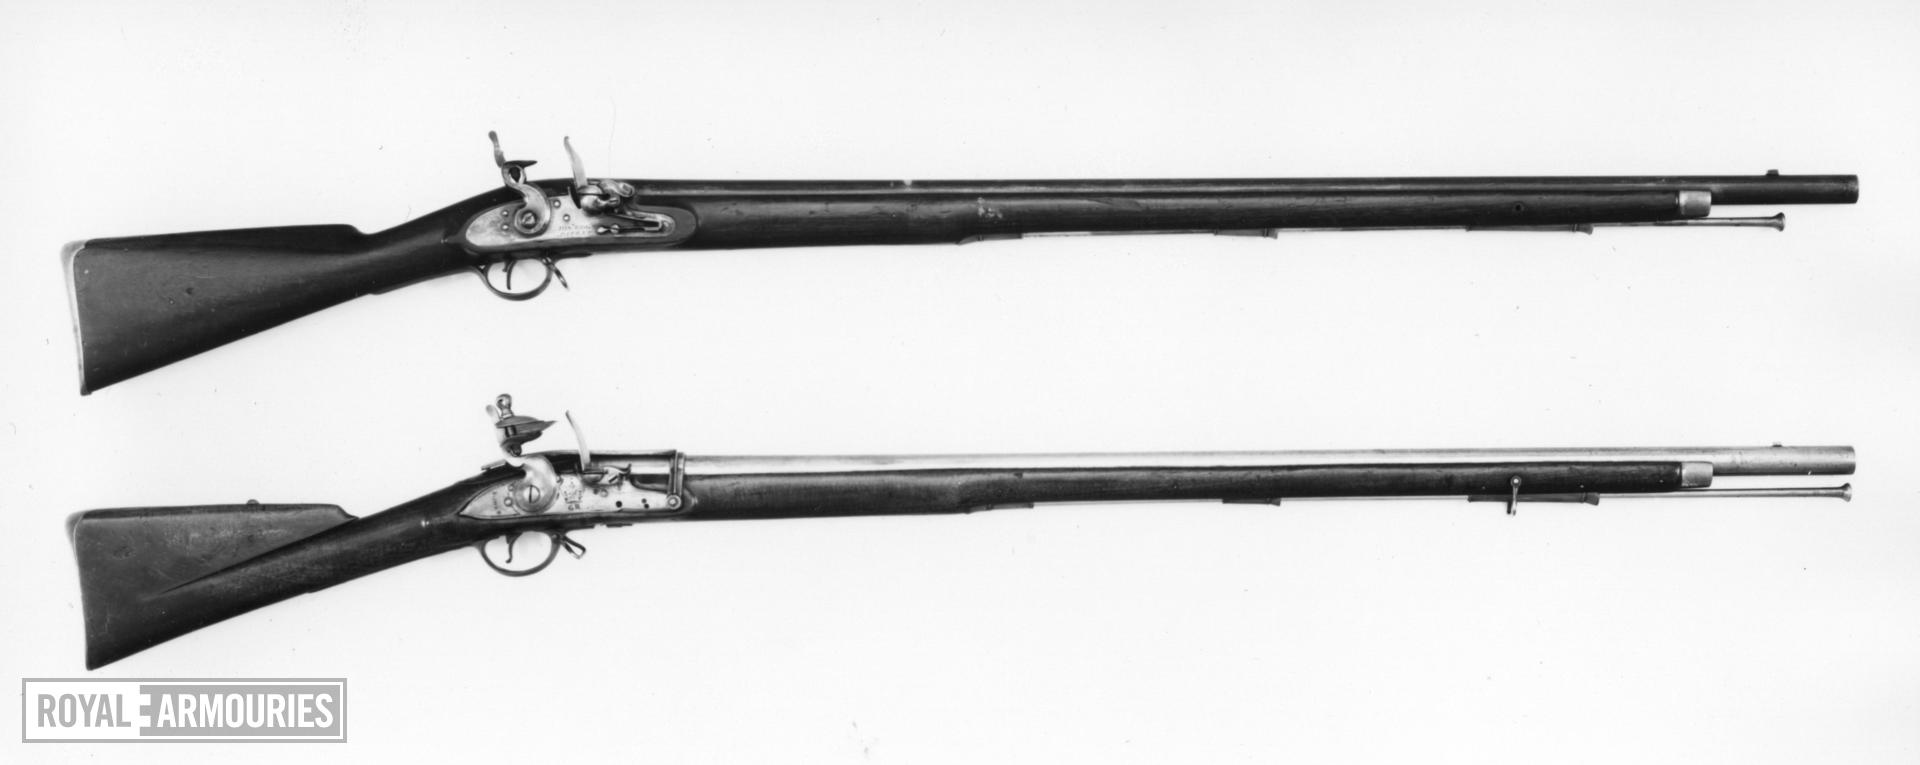 Flintlock muzzle-loading military musket - By Joseph Egg